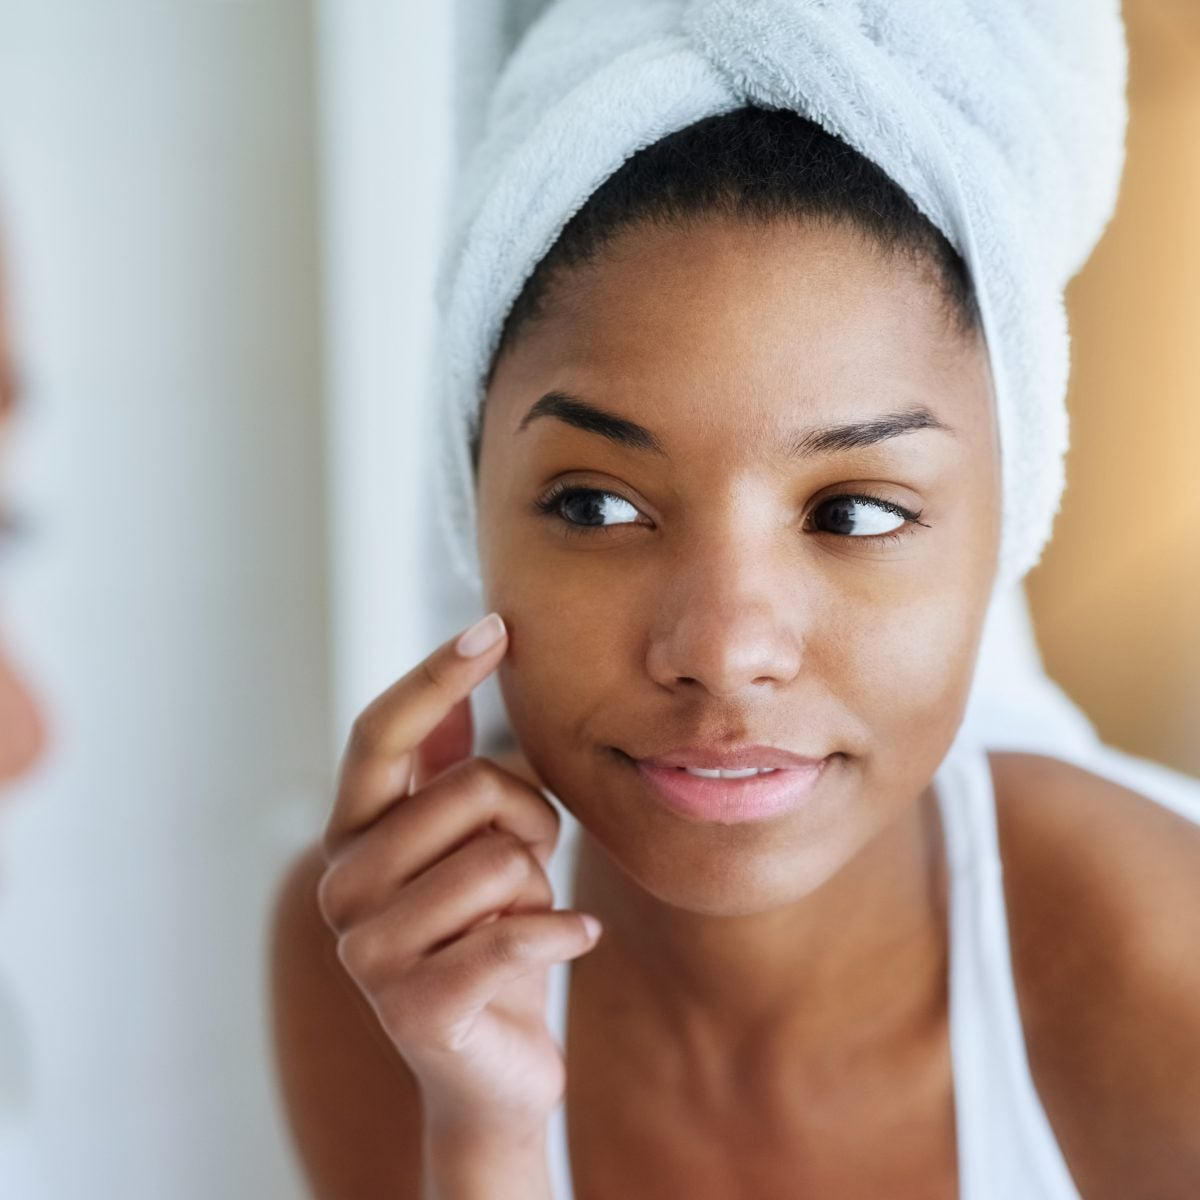 Is Retinol Good For The Skin? The Experts Explain